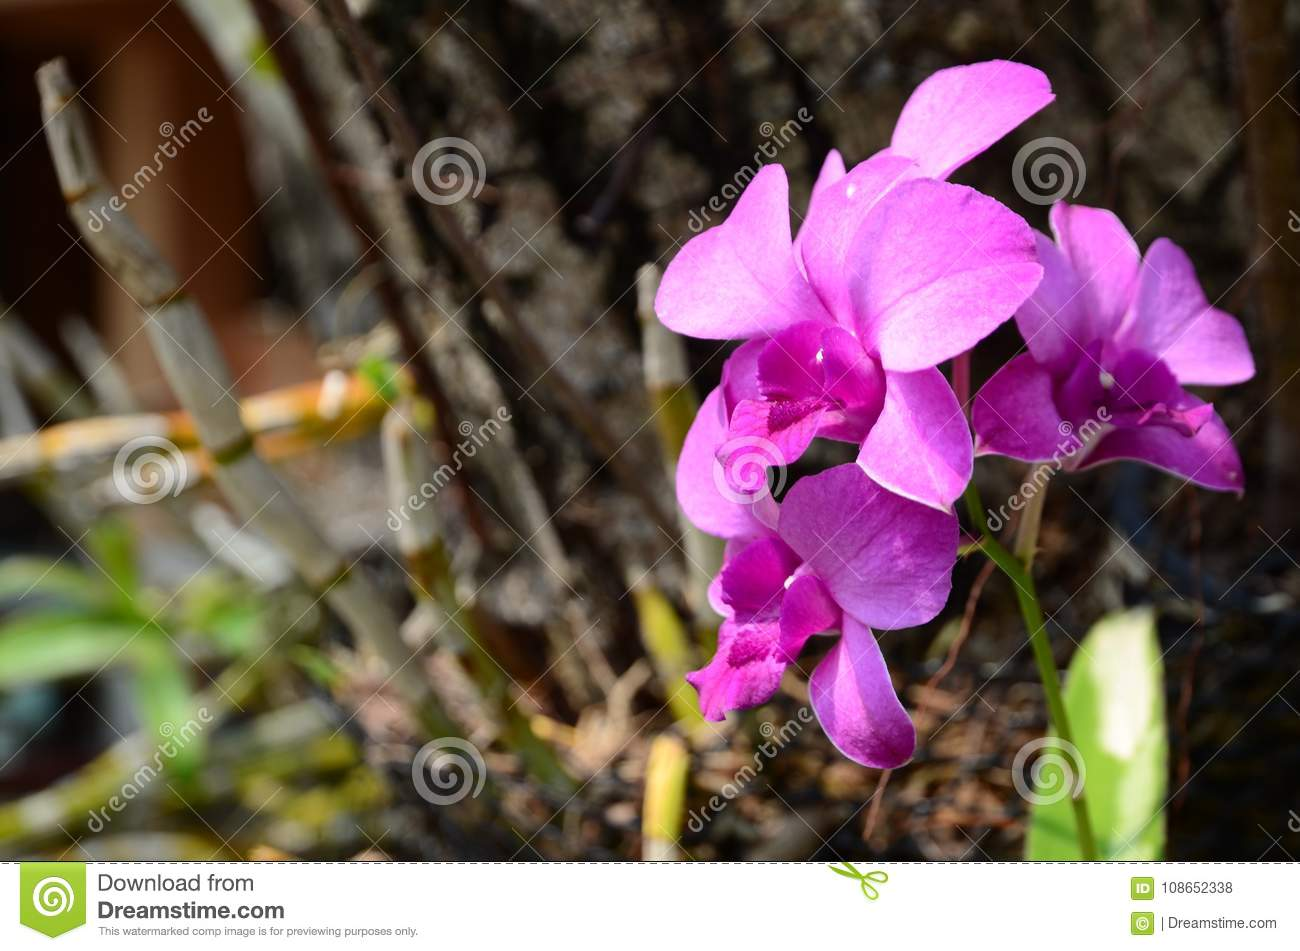 Colorful flowers in nature orchid flower stock photo image of colorful flowers in nature group of yellow bouquet flower with green leaves beautiful pink and purple flowers in nature around the house orchid flower izmirmasajfo